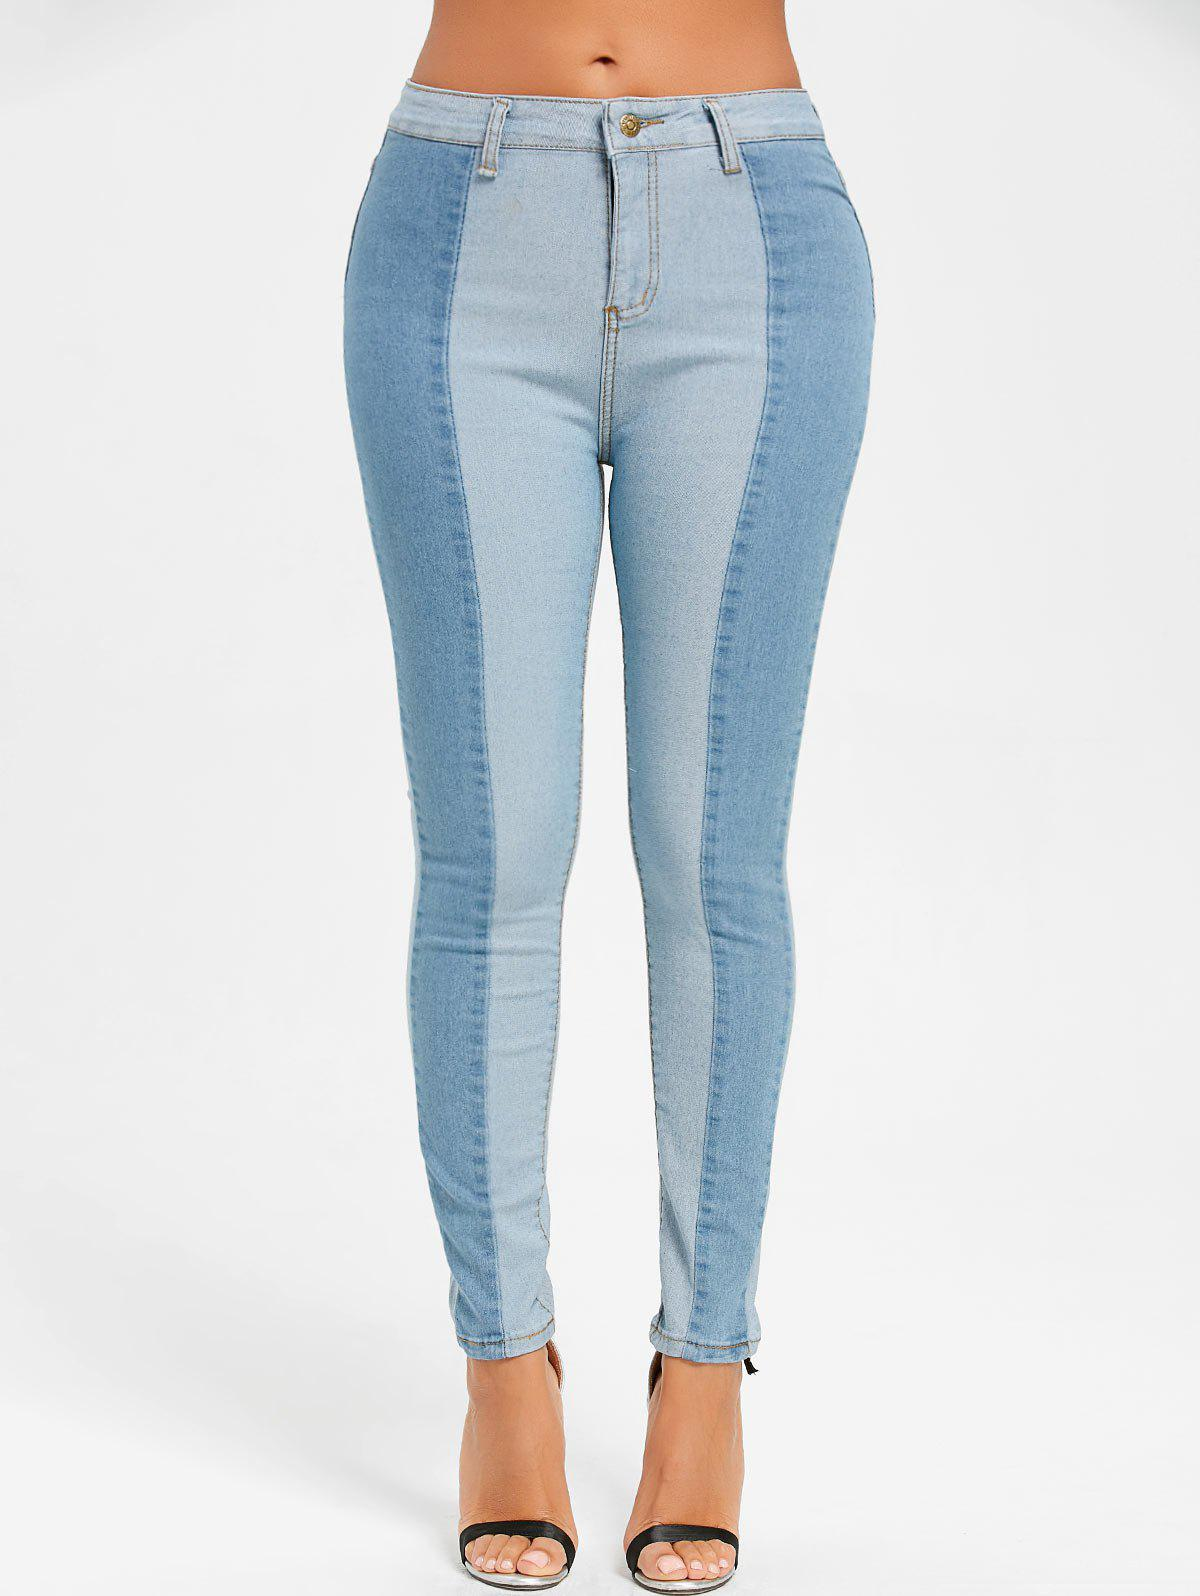 Two Tone Color Skinny Denim JeansWOMEN<br><br>Size: XL; Color: CLOUDY; Material: Cotton,Polyester; Length: Normal; Fabric Type: Denim; Wash: Light; Fit Type: Skinny; Embellishment: Pockets; Weight: 0.4700kg; Package Contents: 1 x Jeans;